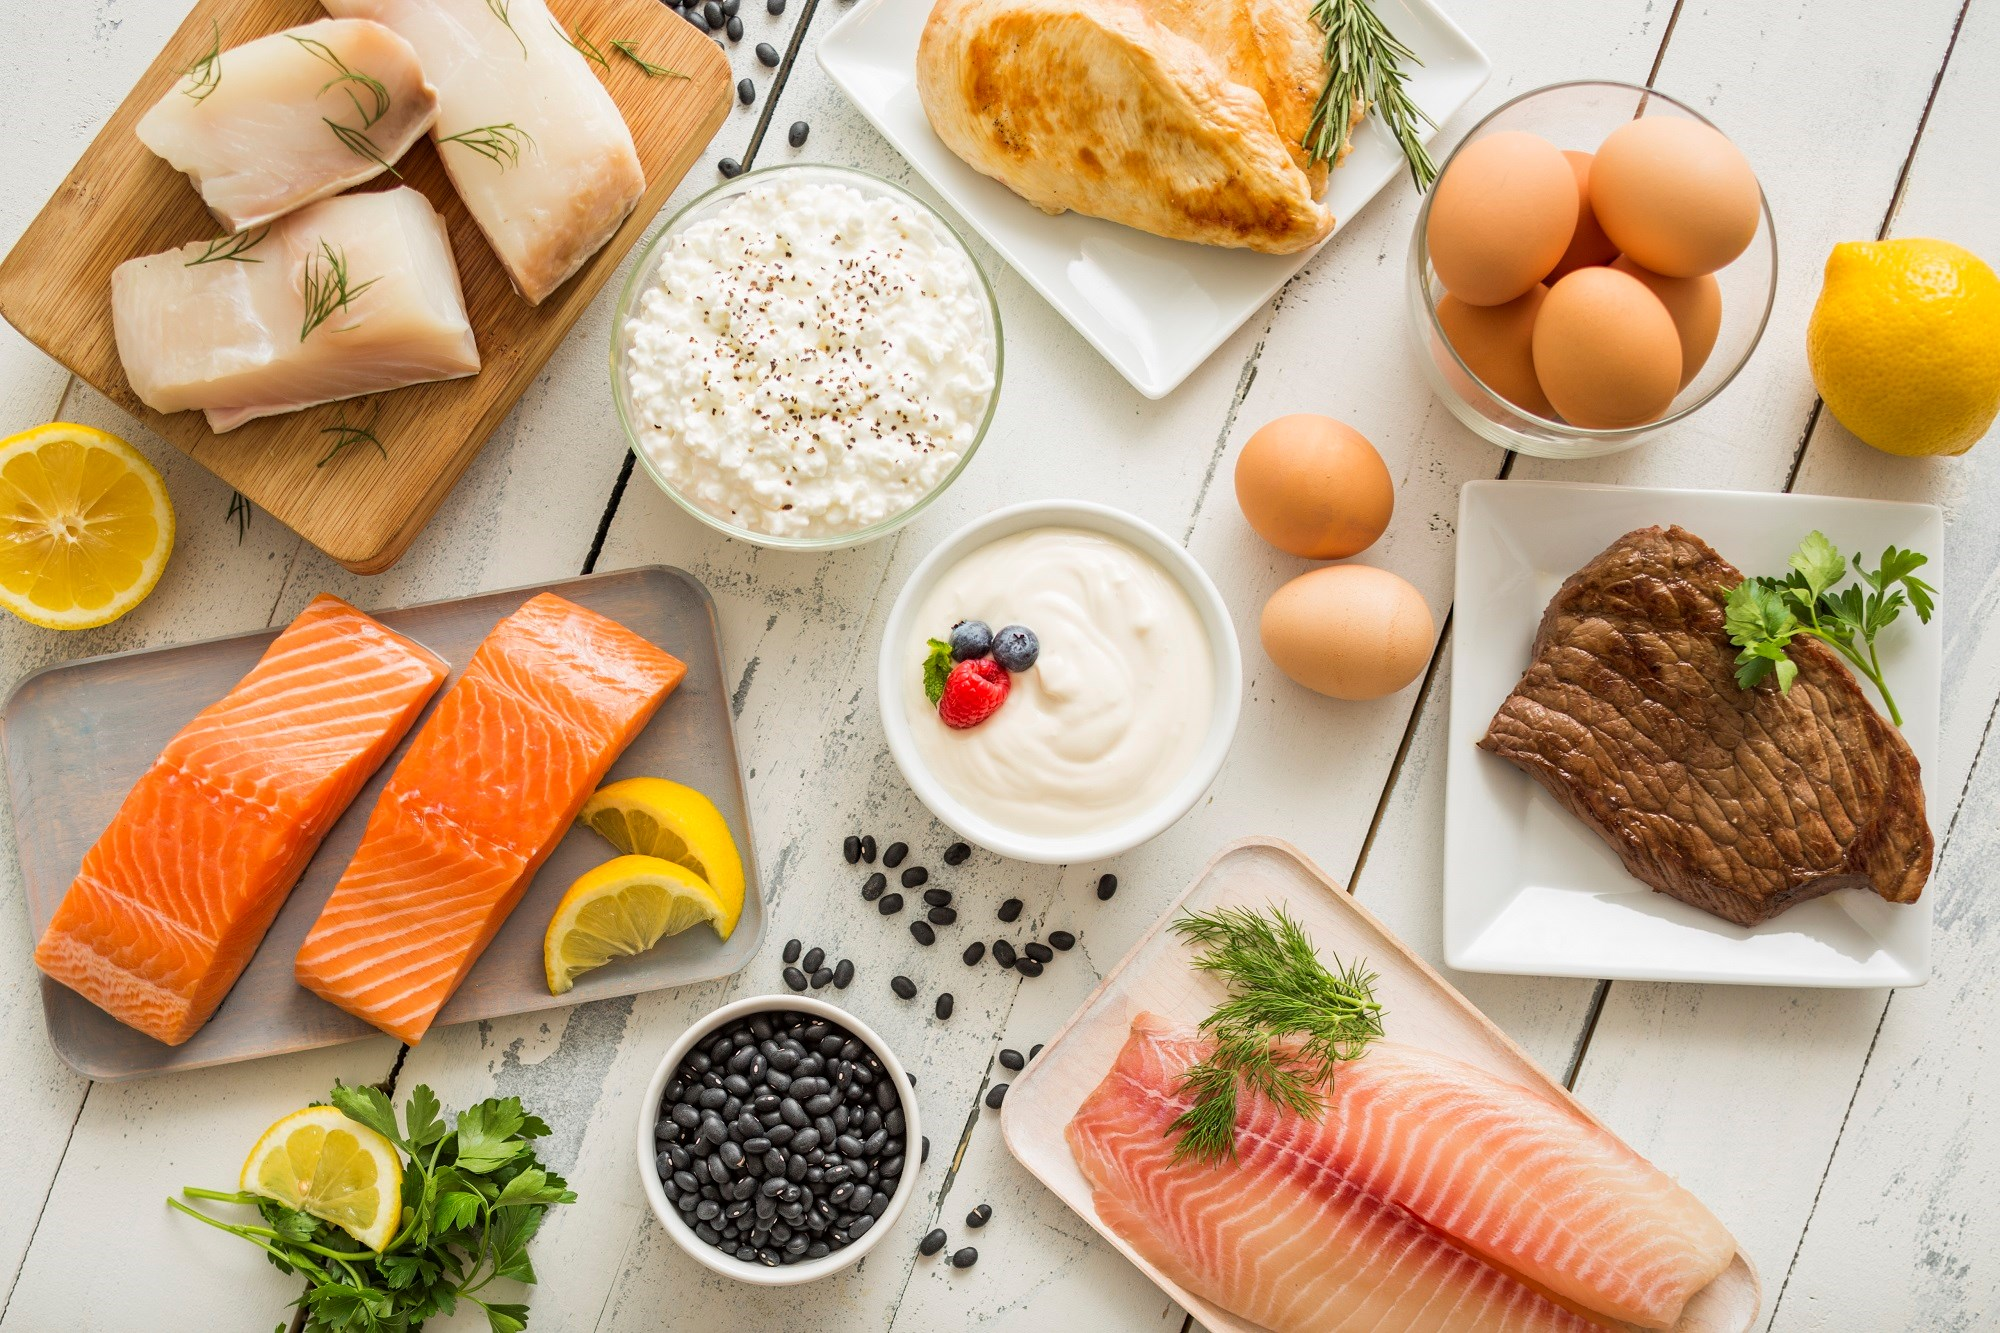 Risk for Central Nervous System Demyelination Reduced by Healthy Diet